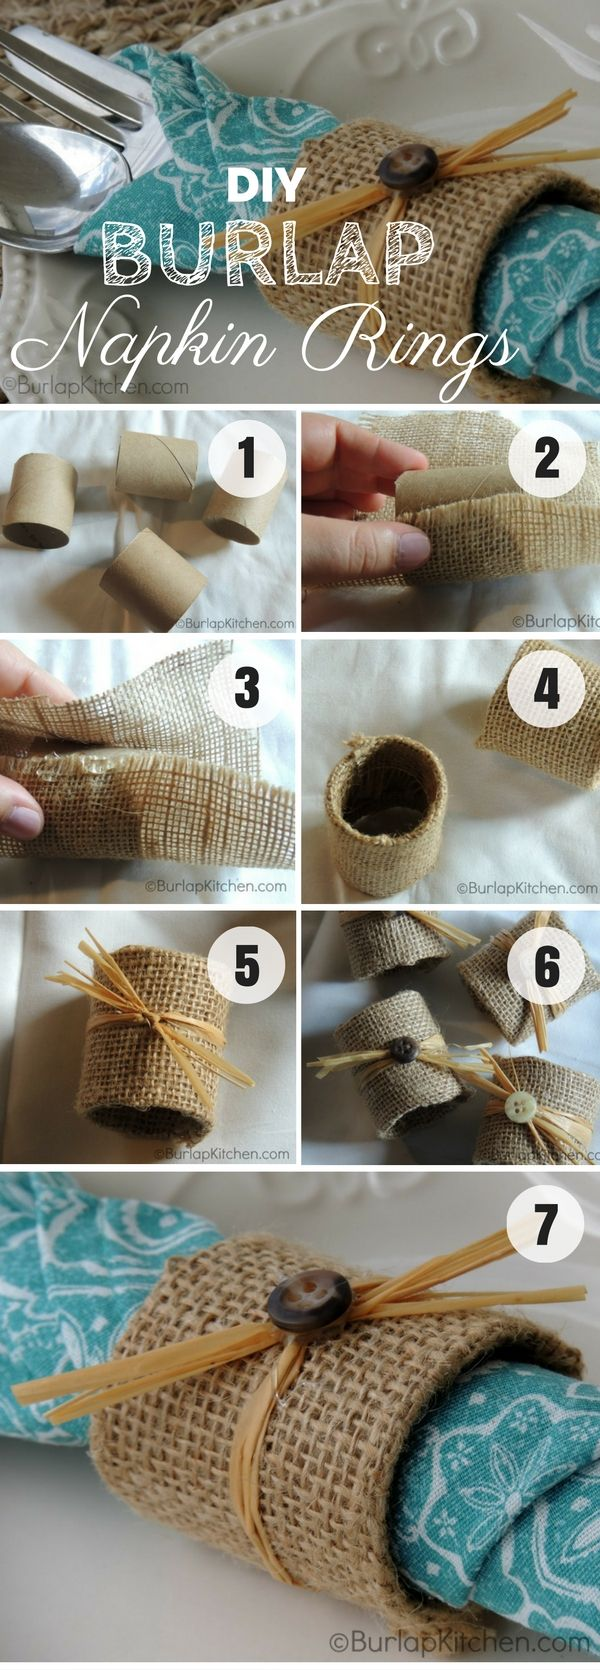 Easy to make DIY Burlap Napkin Rings for fall decor @istandarddesign